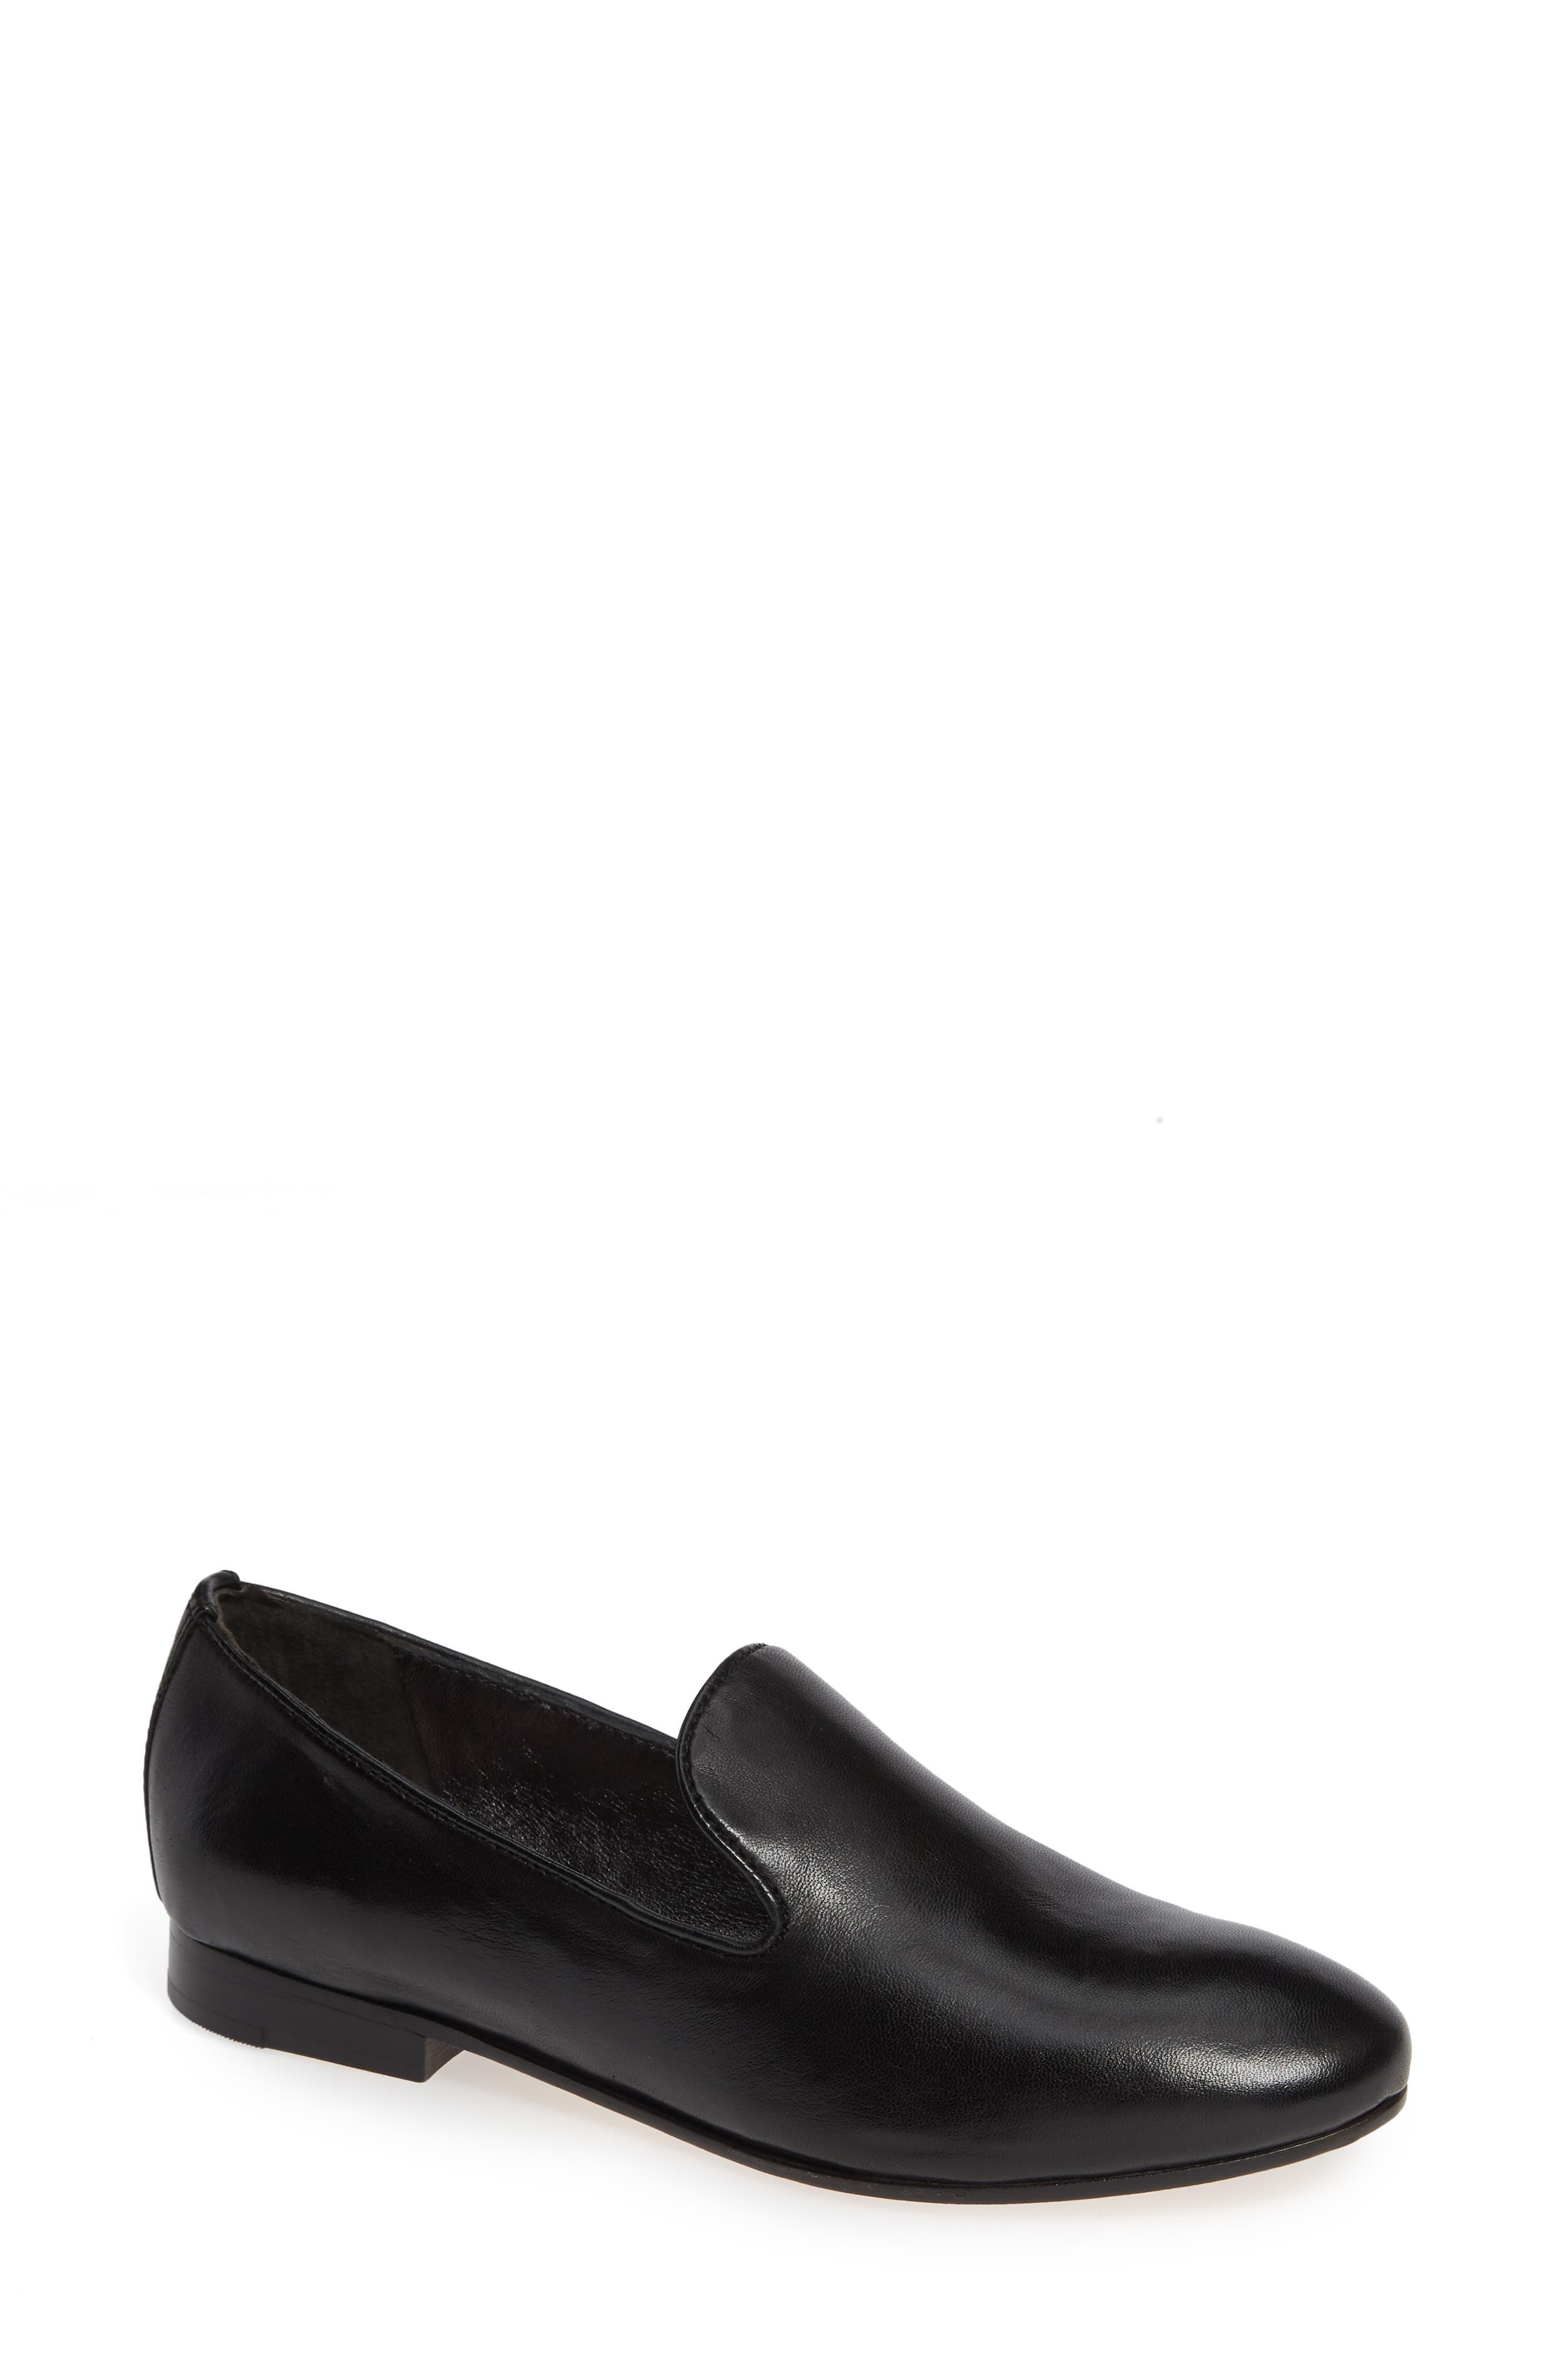 Sierra Loafer,                             Main thumbnail 1, color,                             BLACK LEATHER